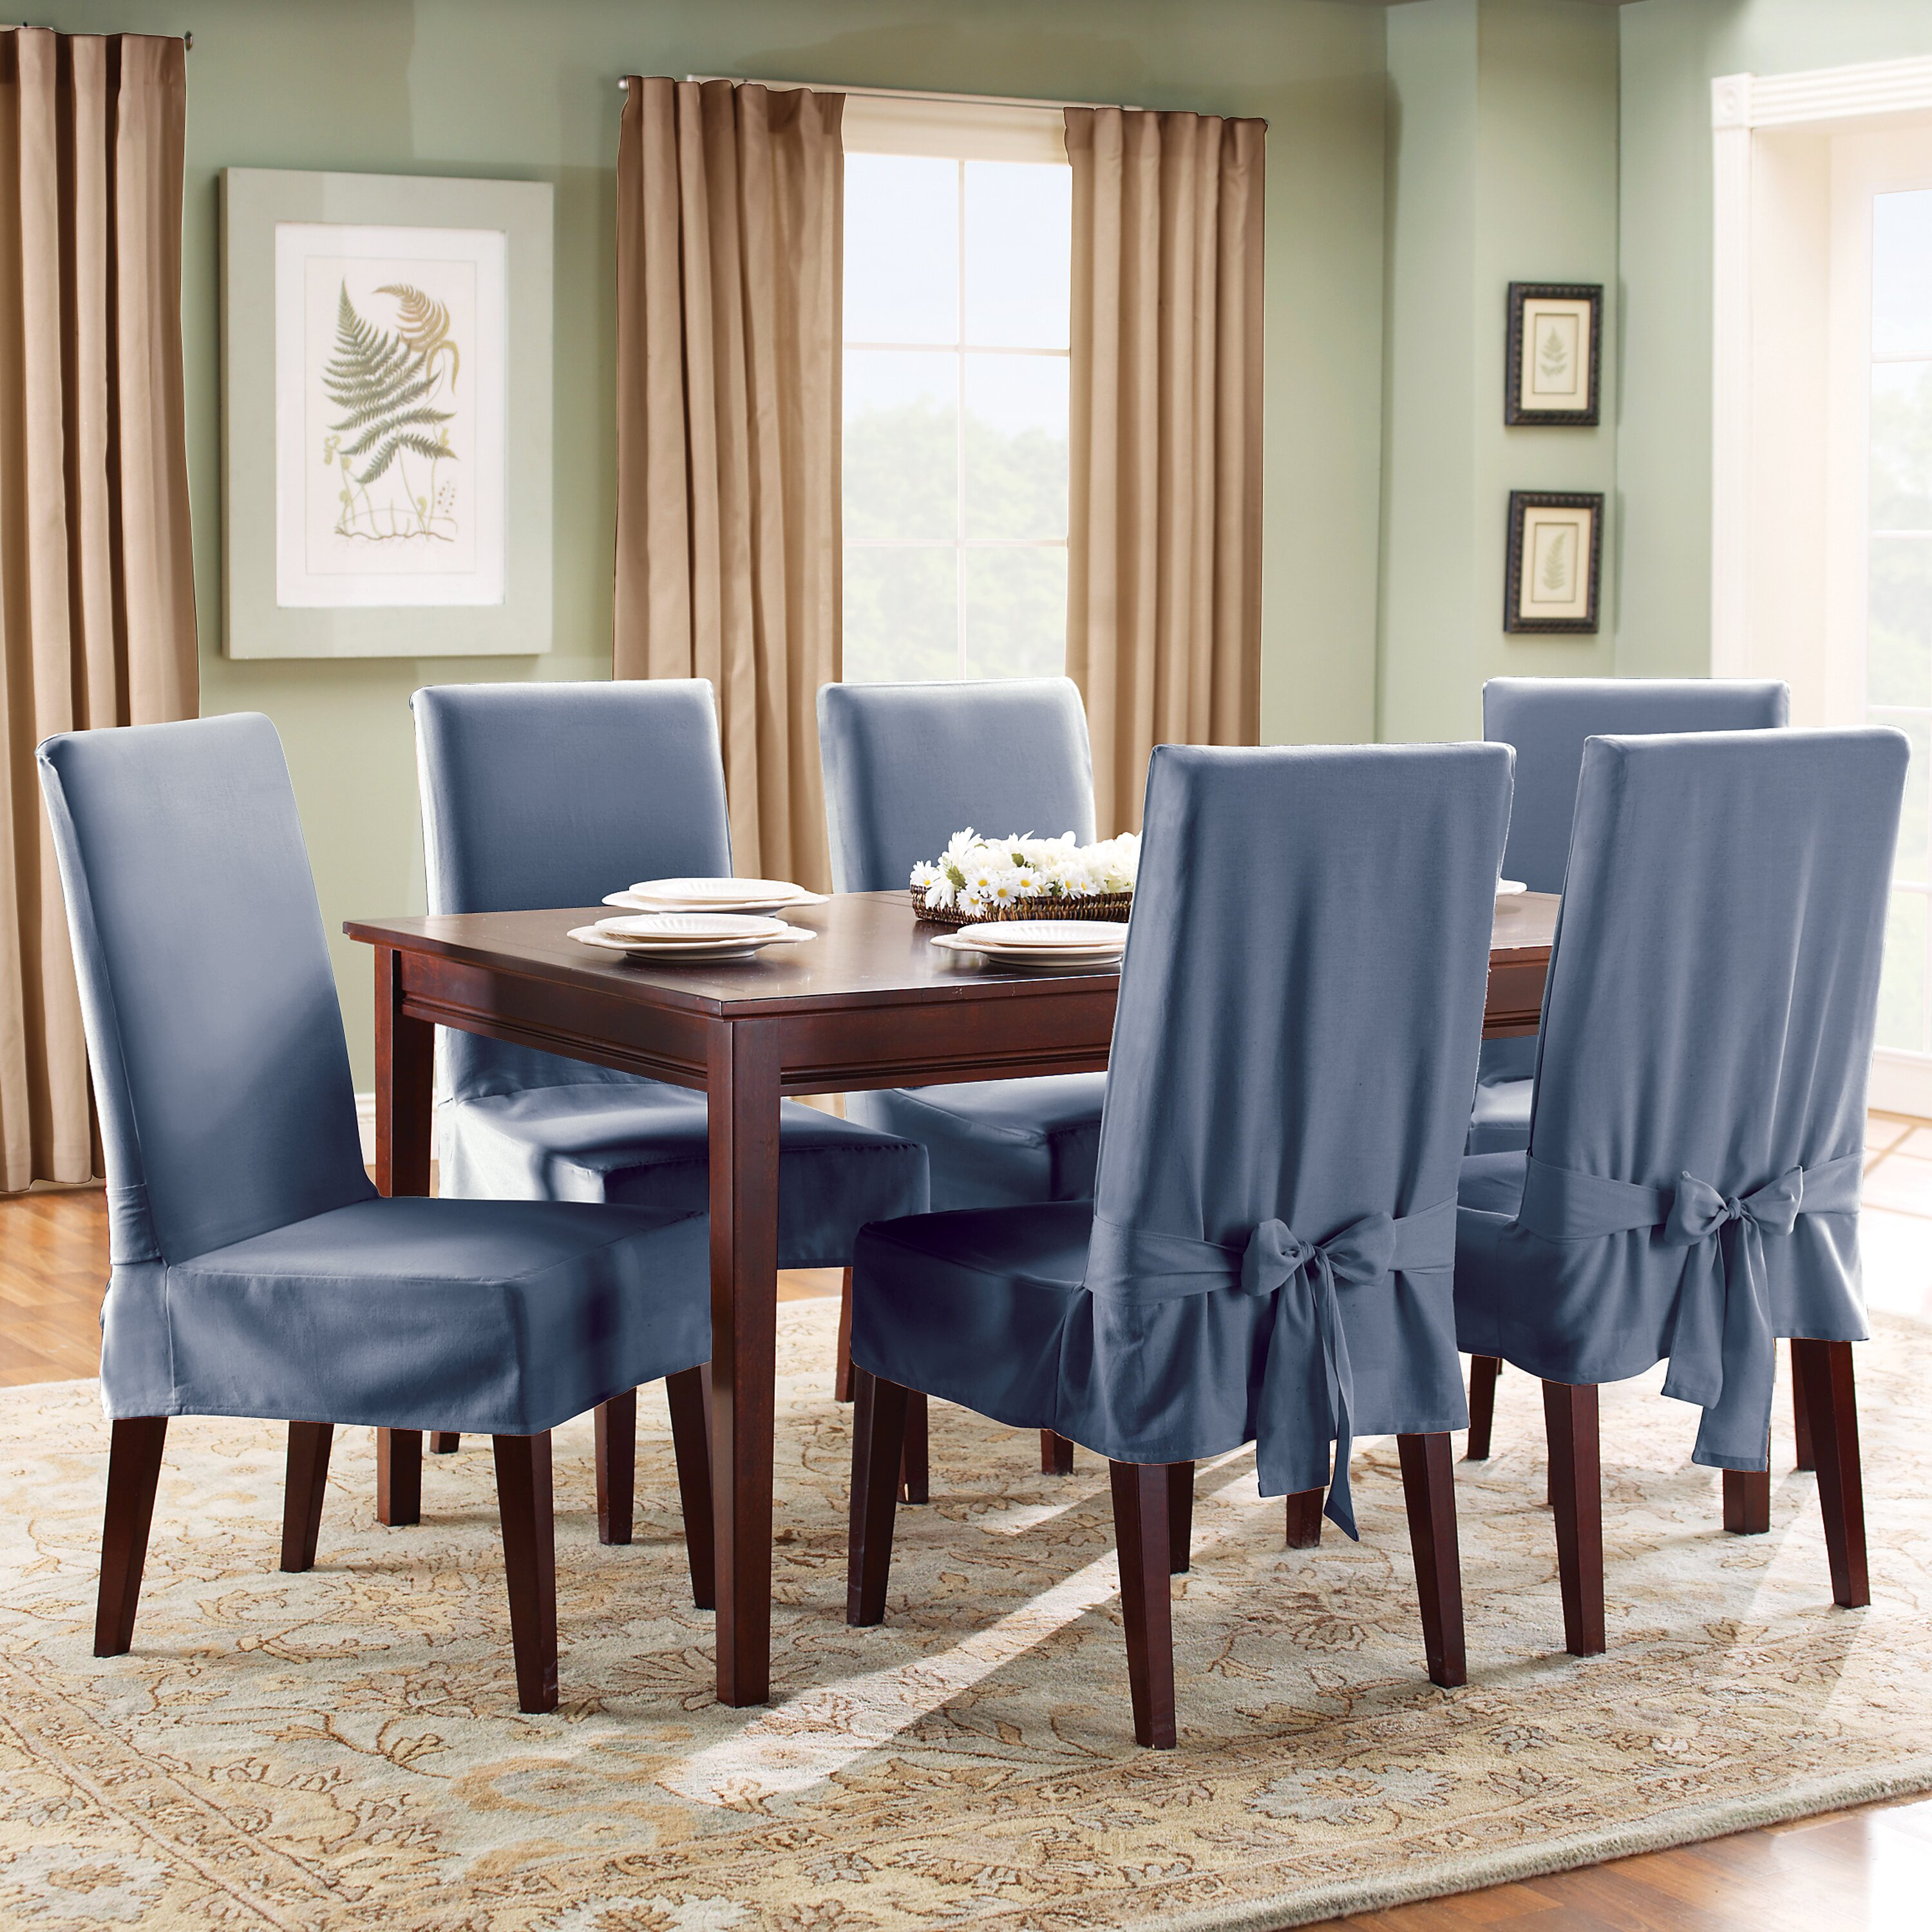 Slipcover For Dining Room Chair: Sure Fit Cotton Duck Shorty Dining Room Chair Slipcover